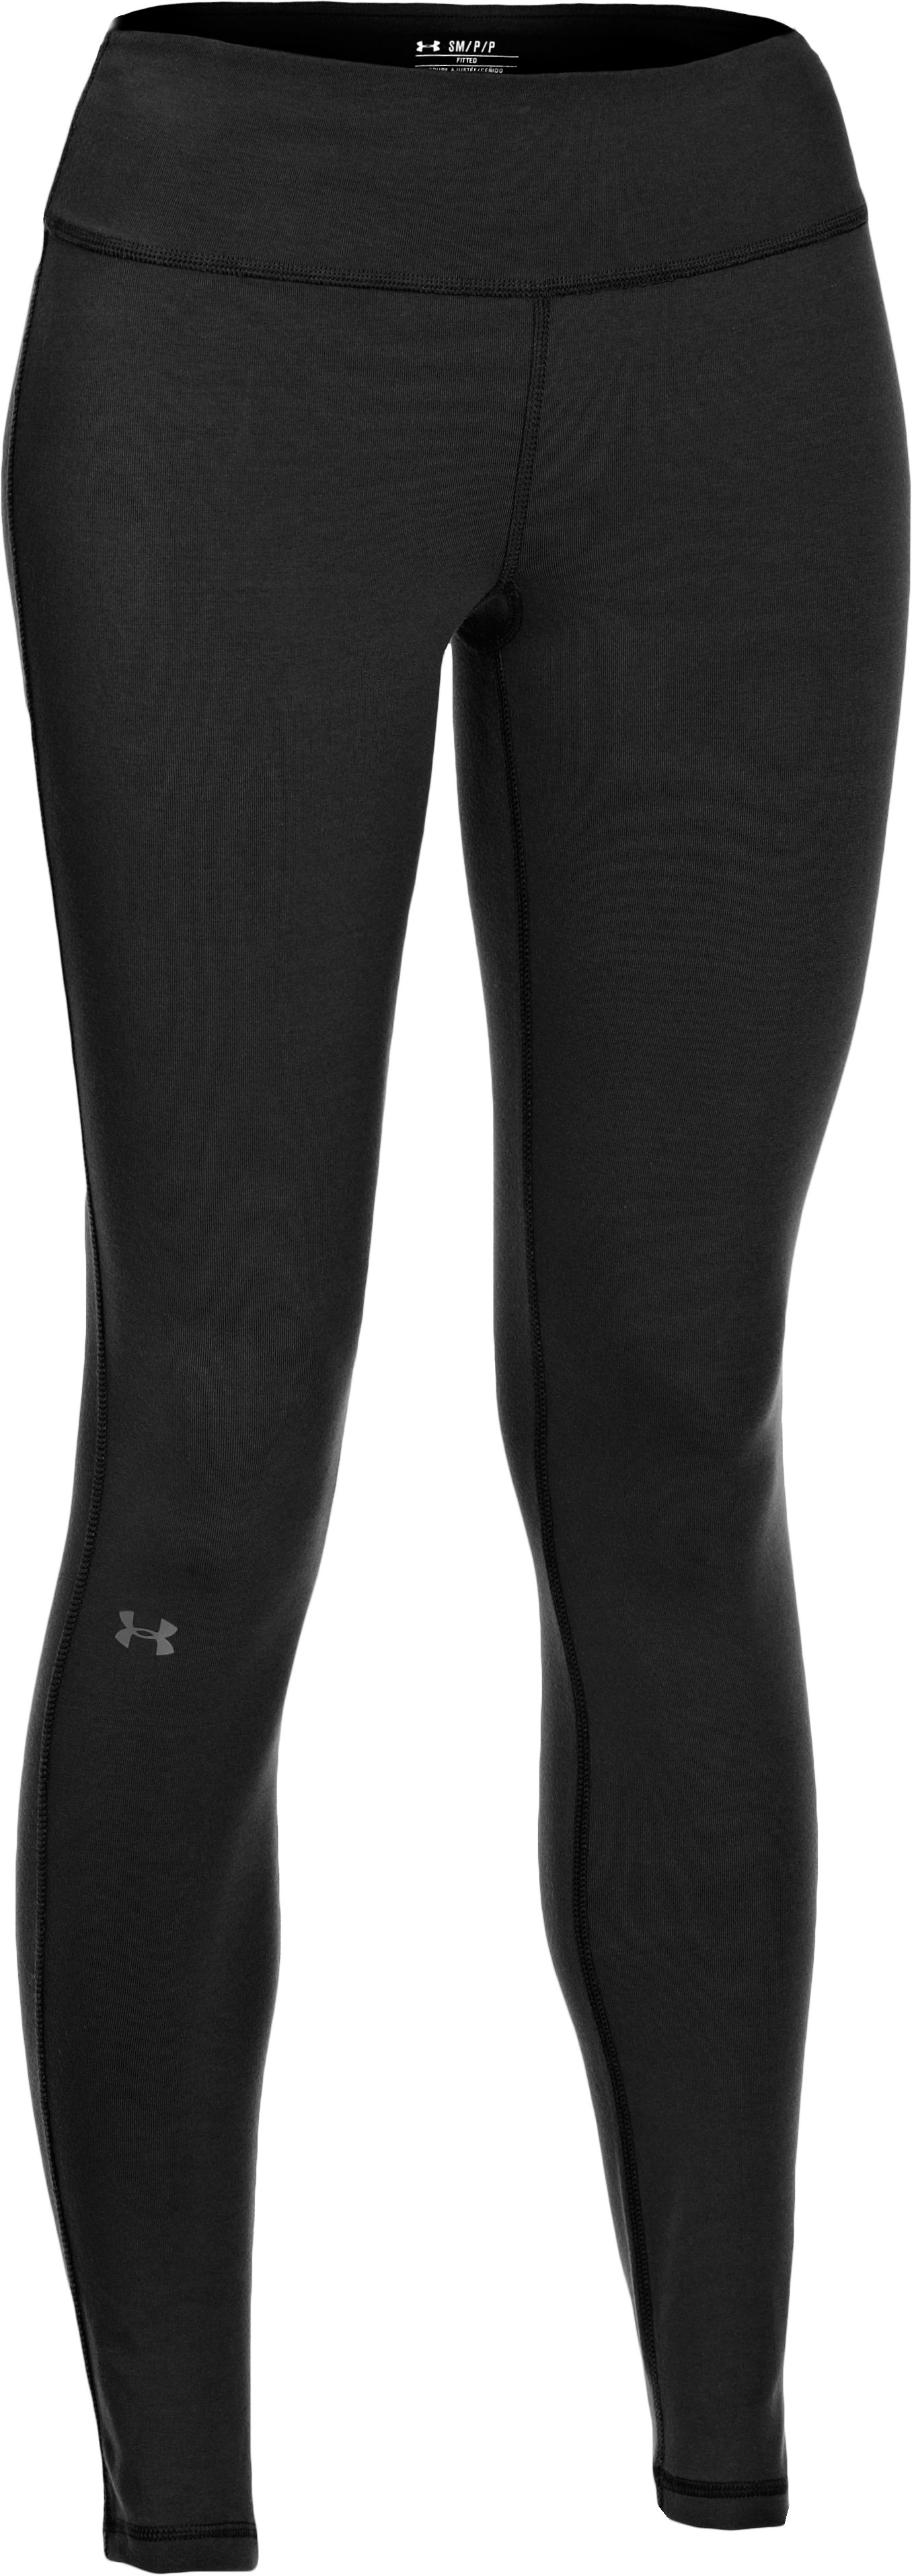 "Women's Charged Cotton® Ultimate 28"" Legging, Black , undefined"